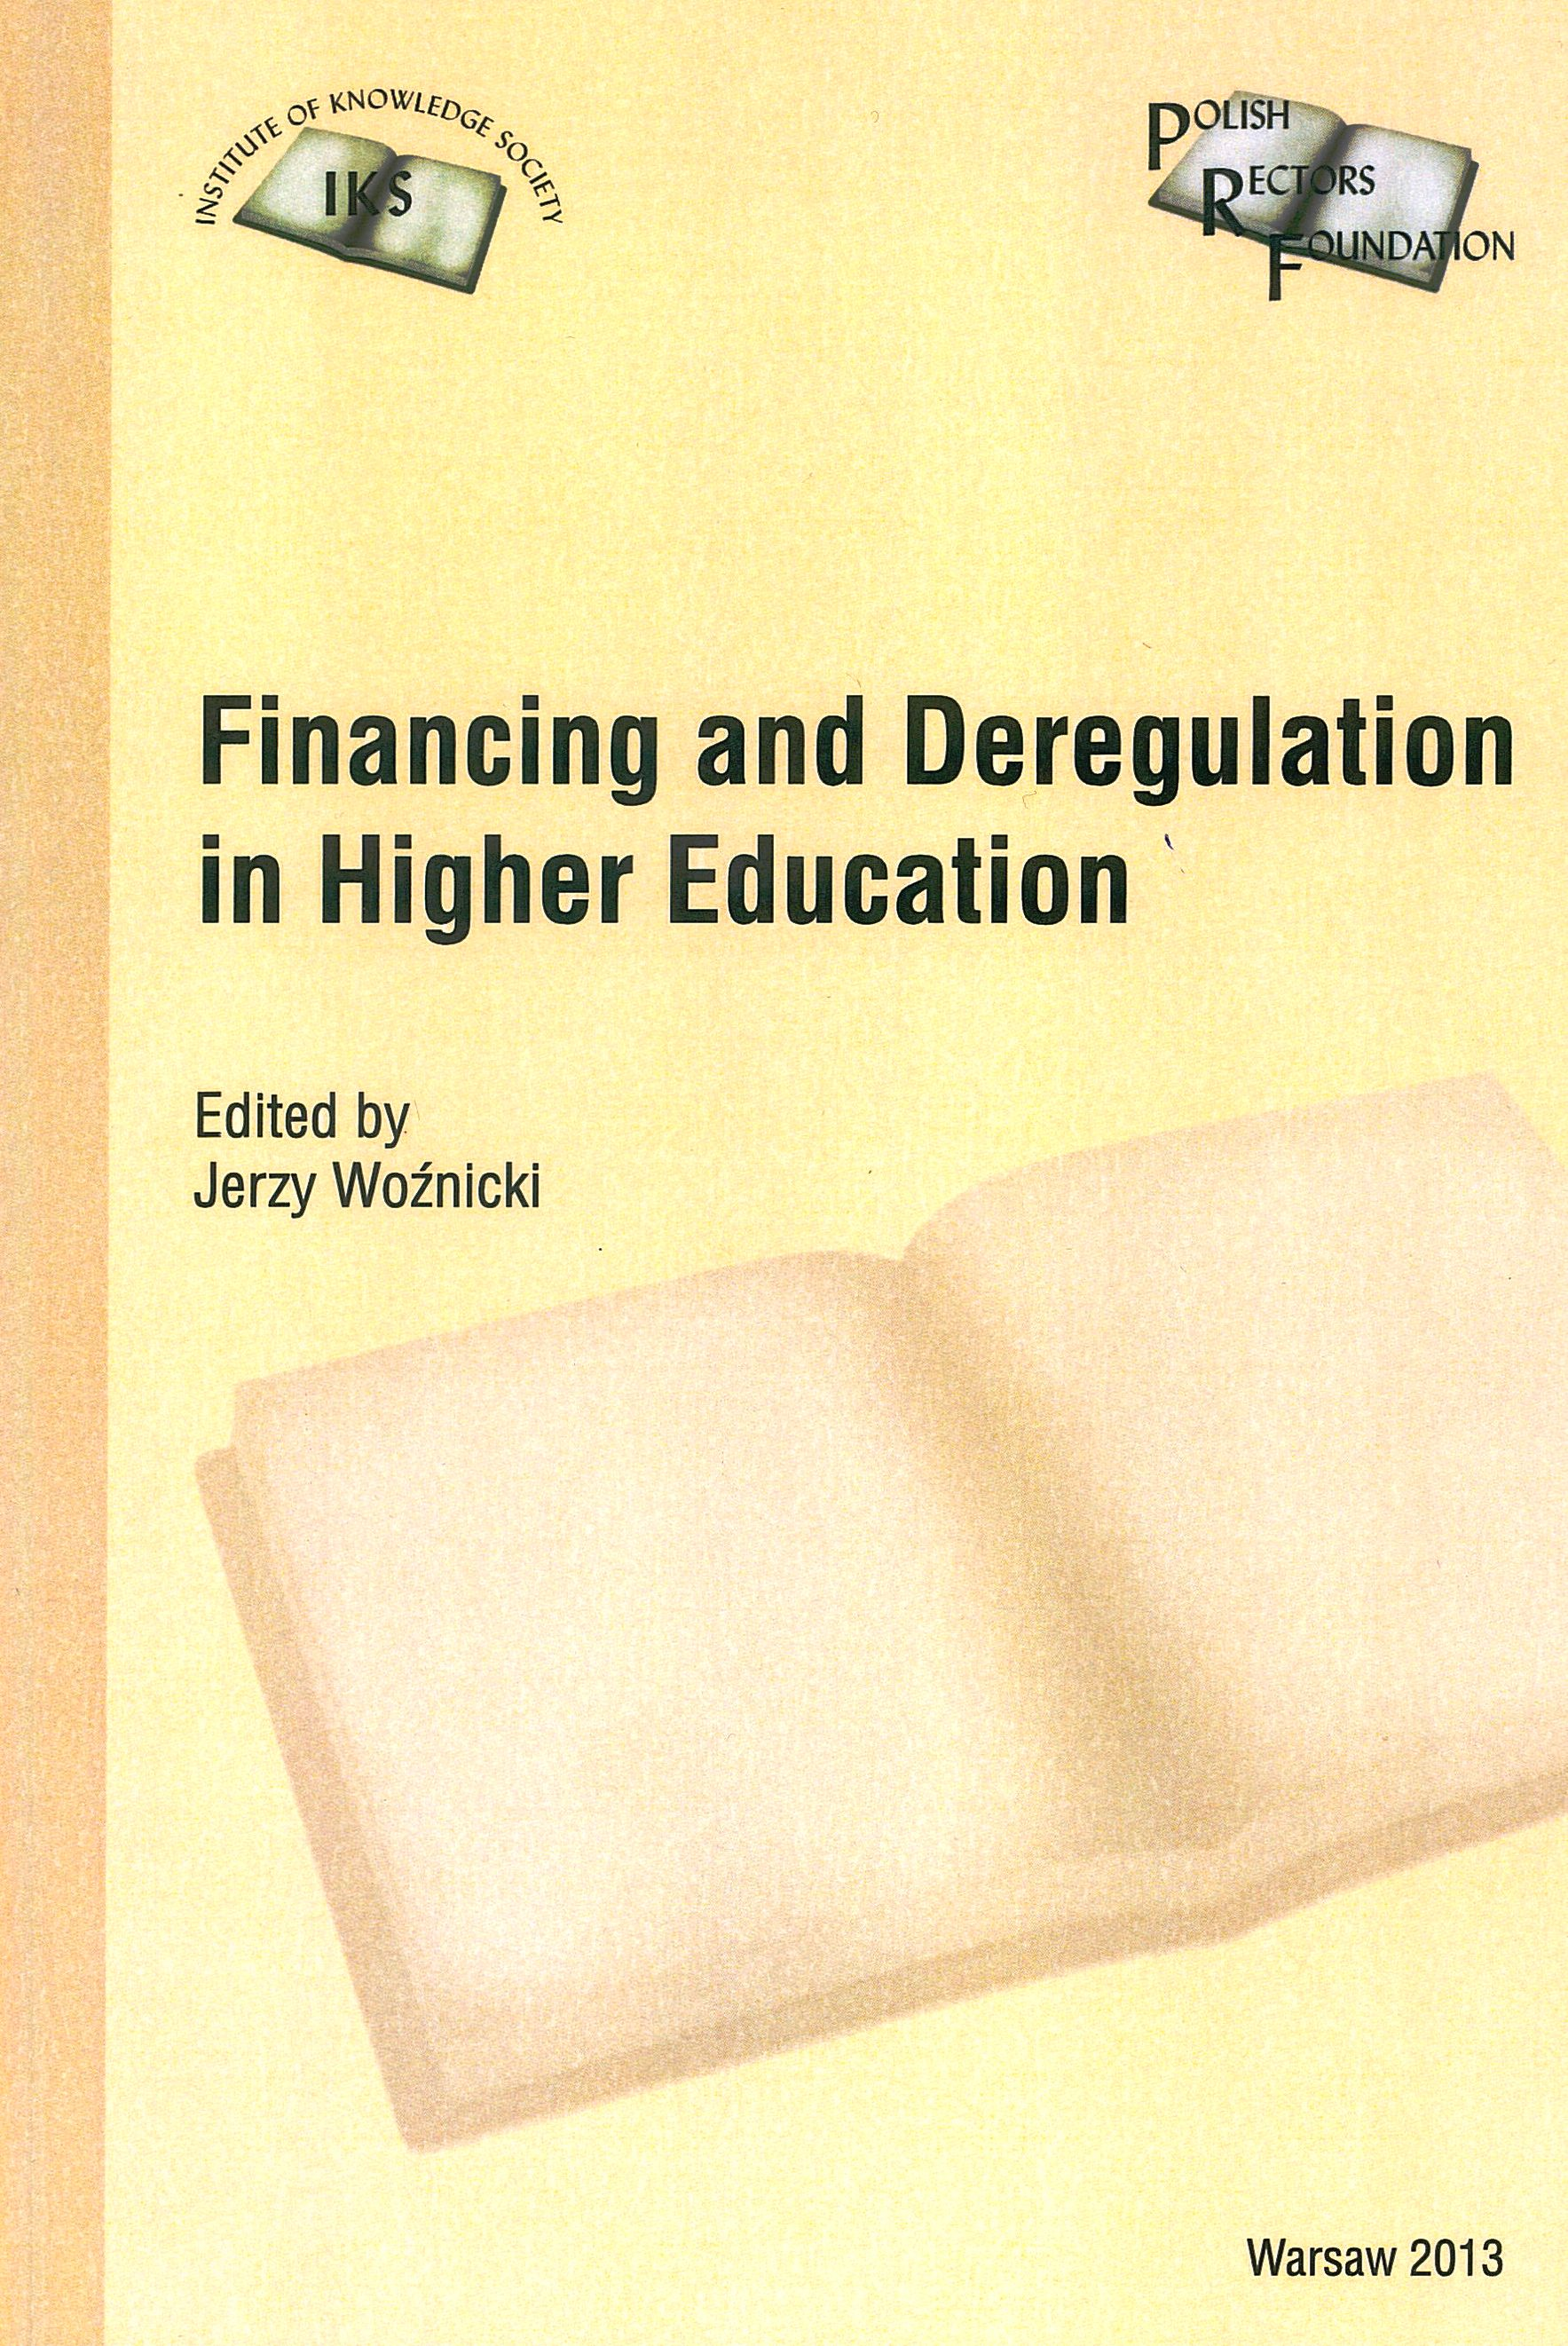 Financing and Deregulation in Higher Education